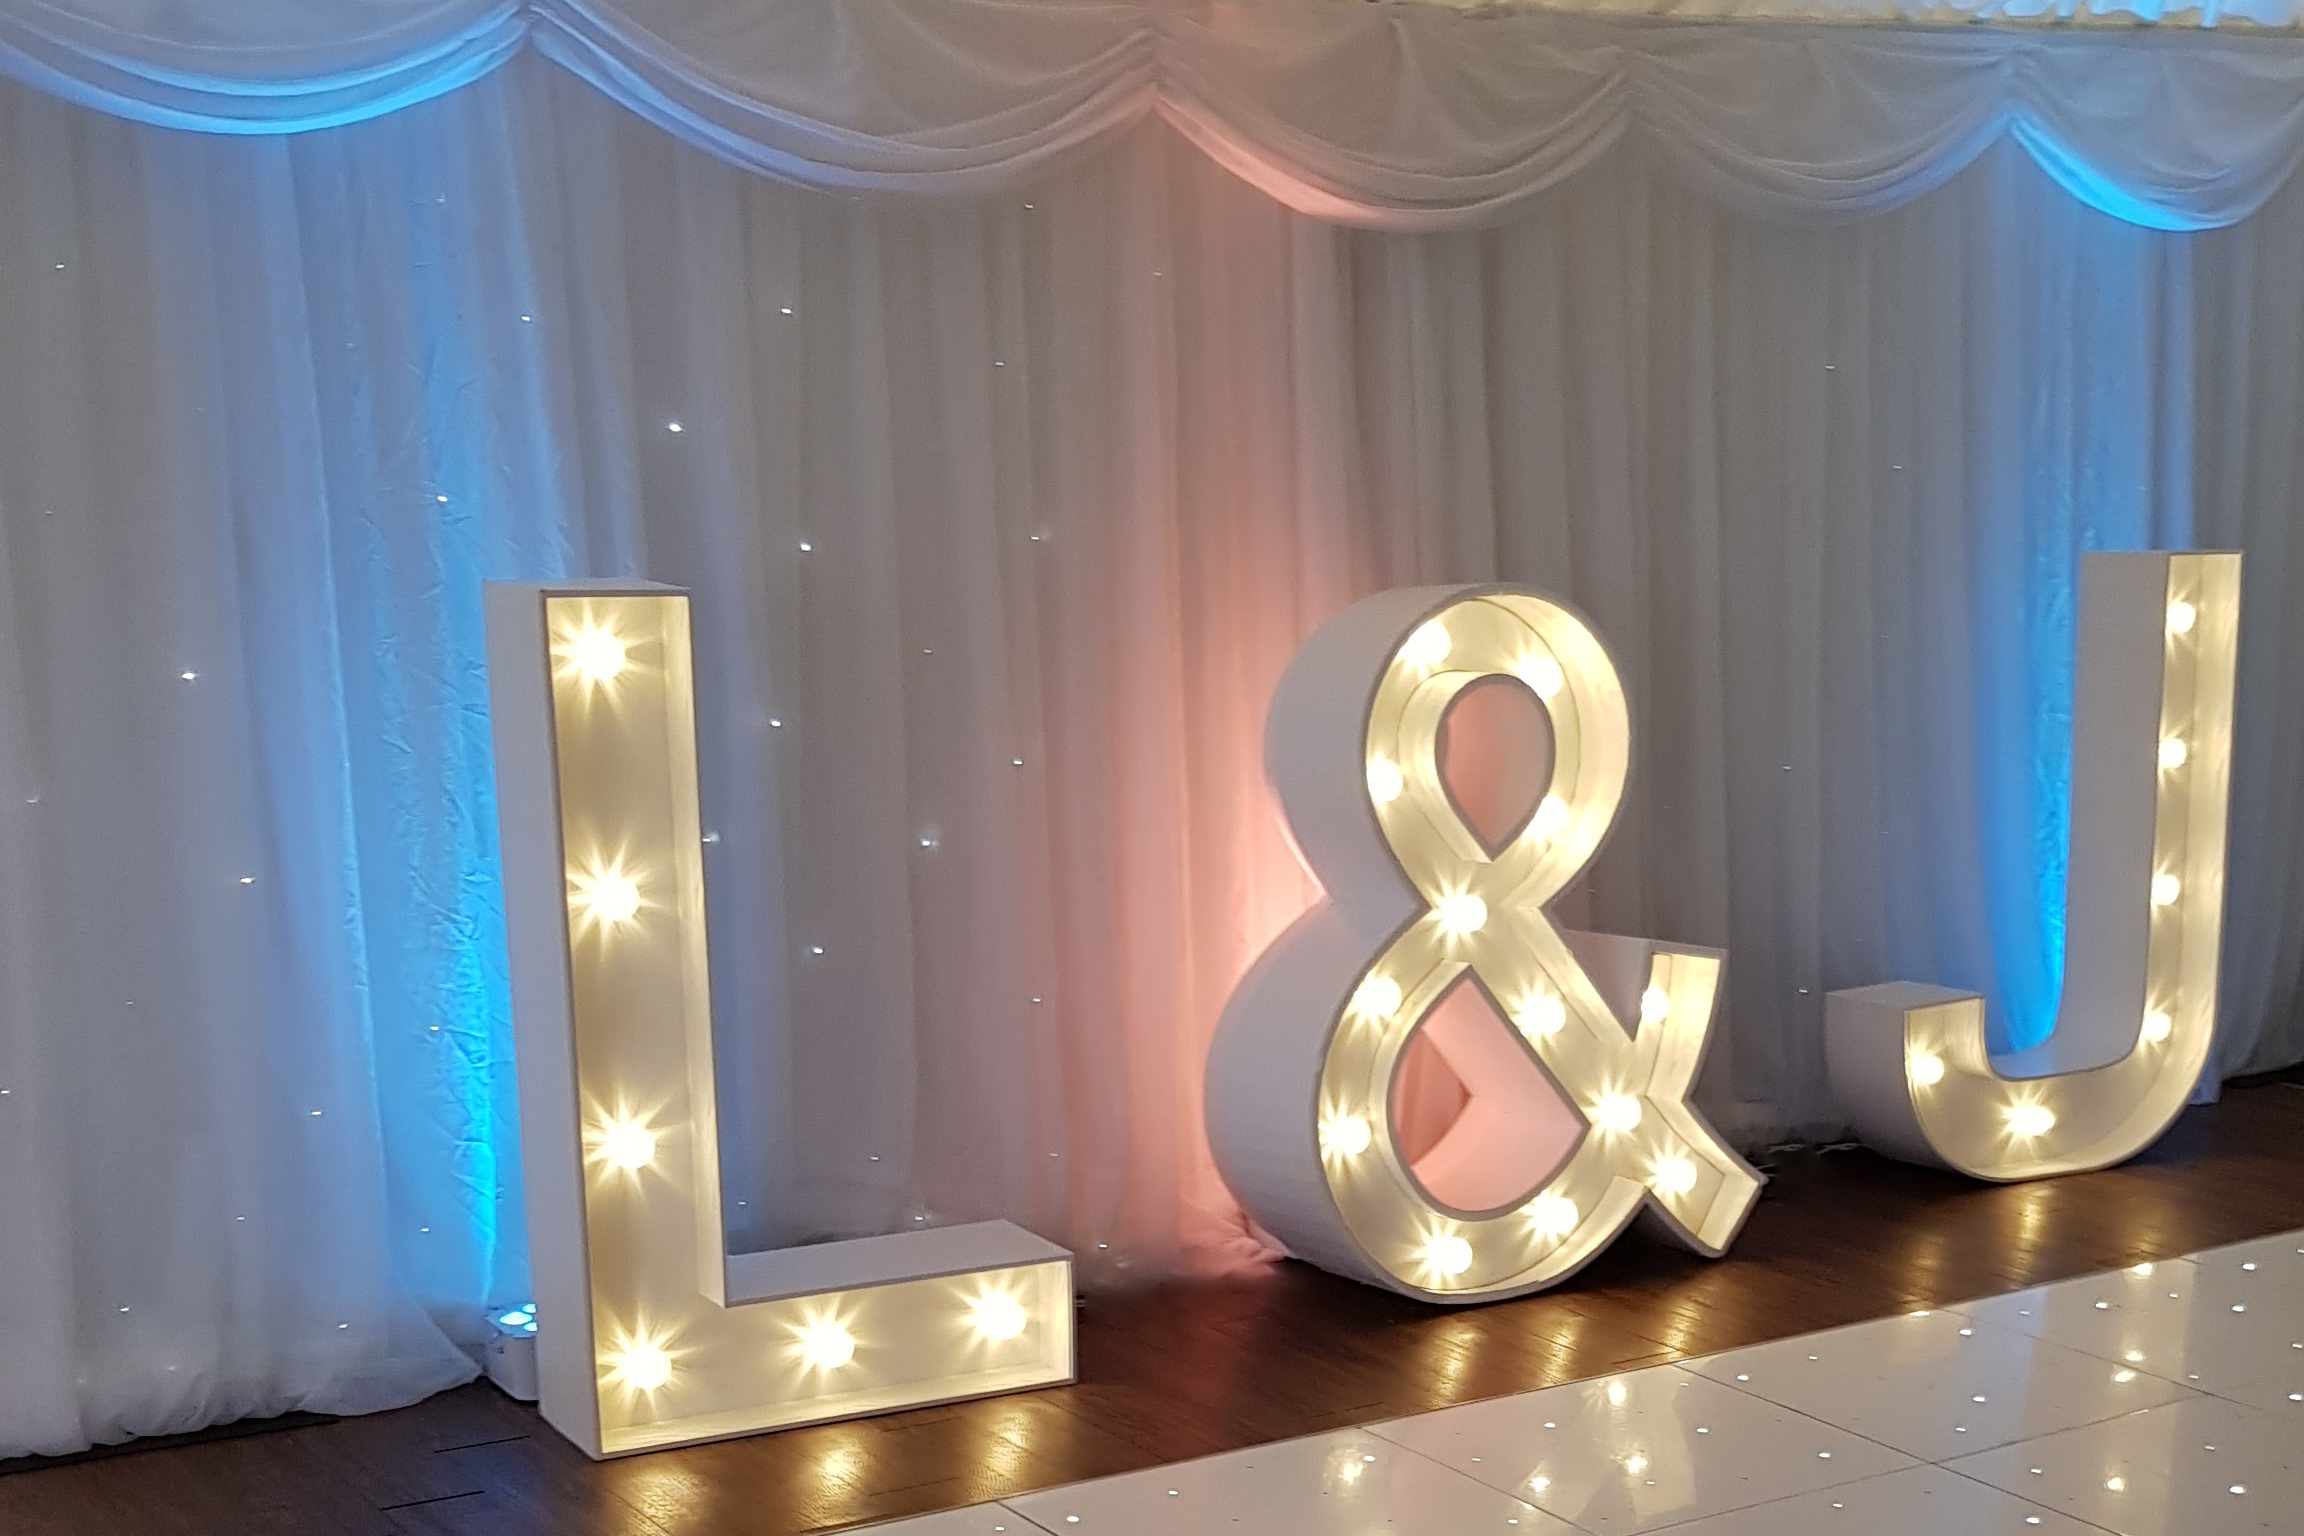 Illuminated light-up initials letters